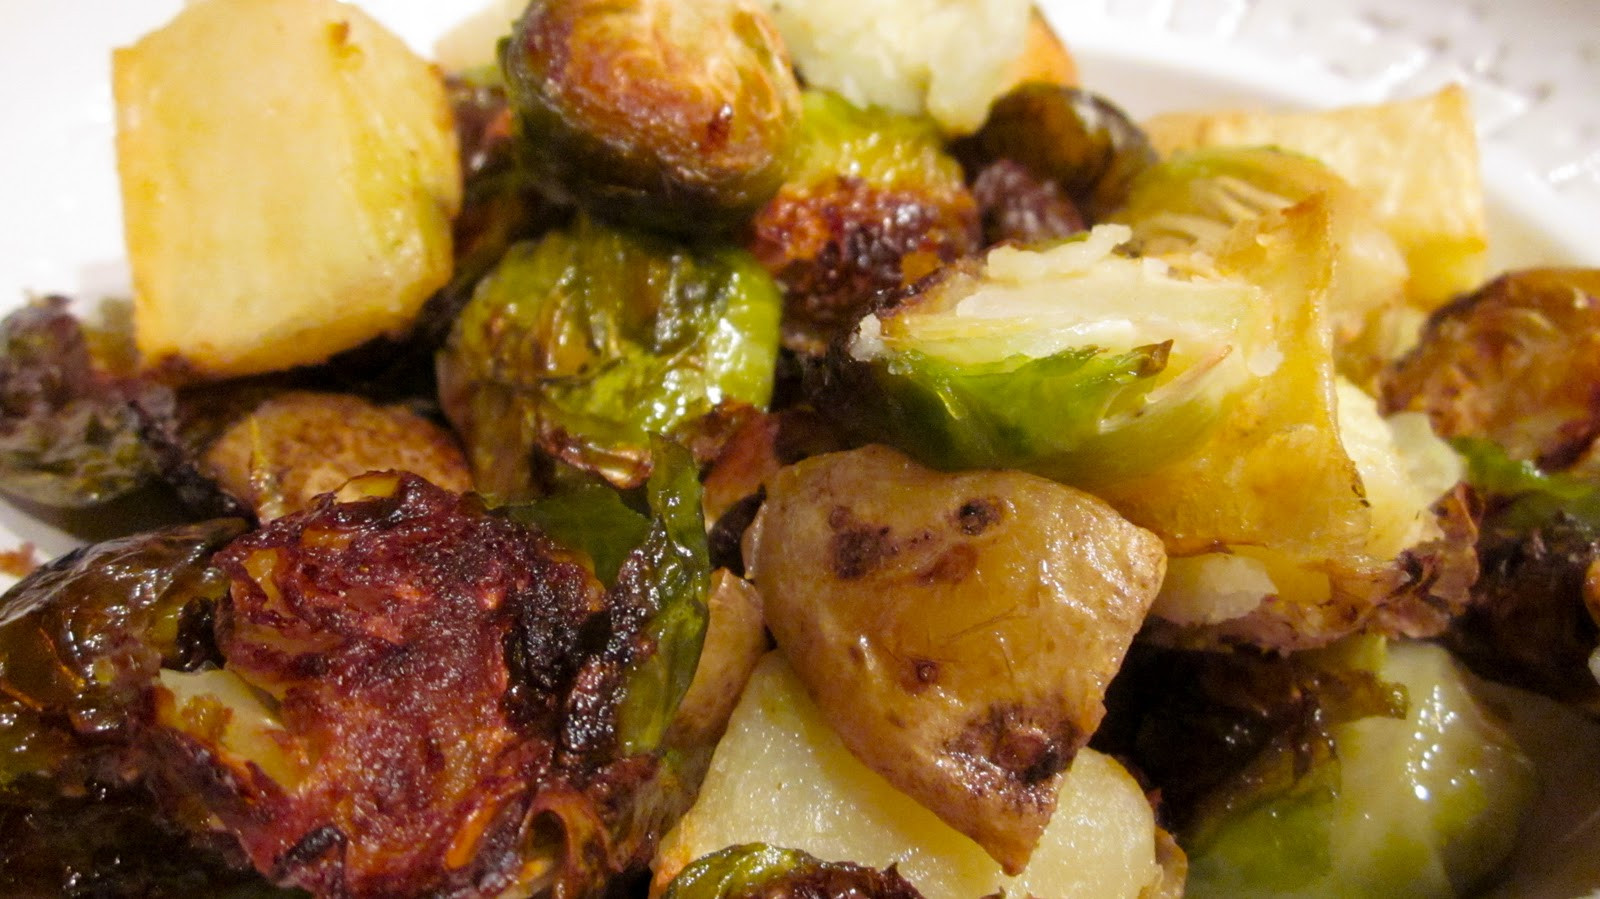 Roasted Potatoes And Brussel Sprouts  What s for dinner Roasted potatoes and Brussels sprouts